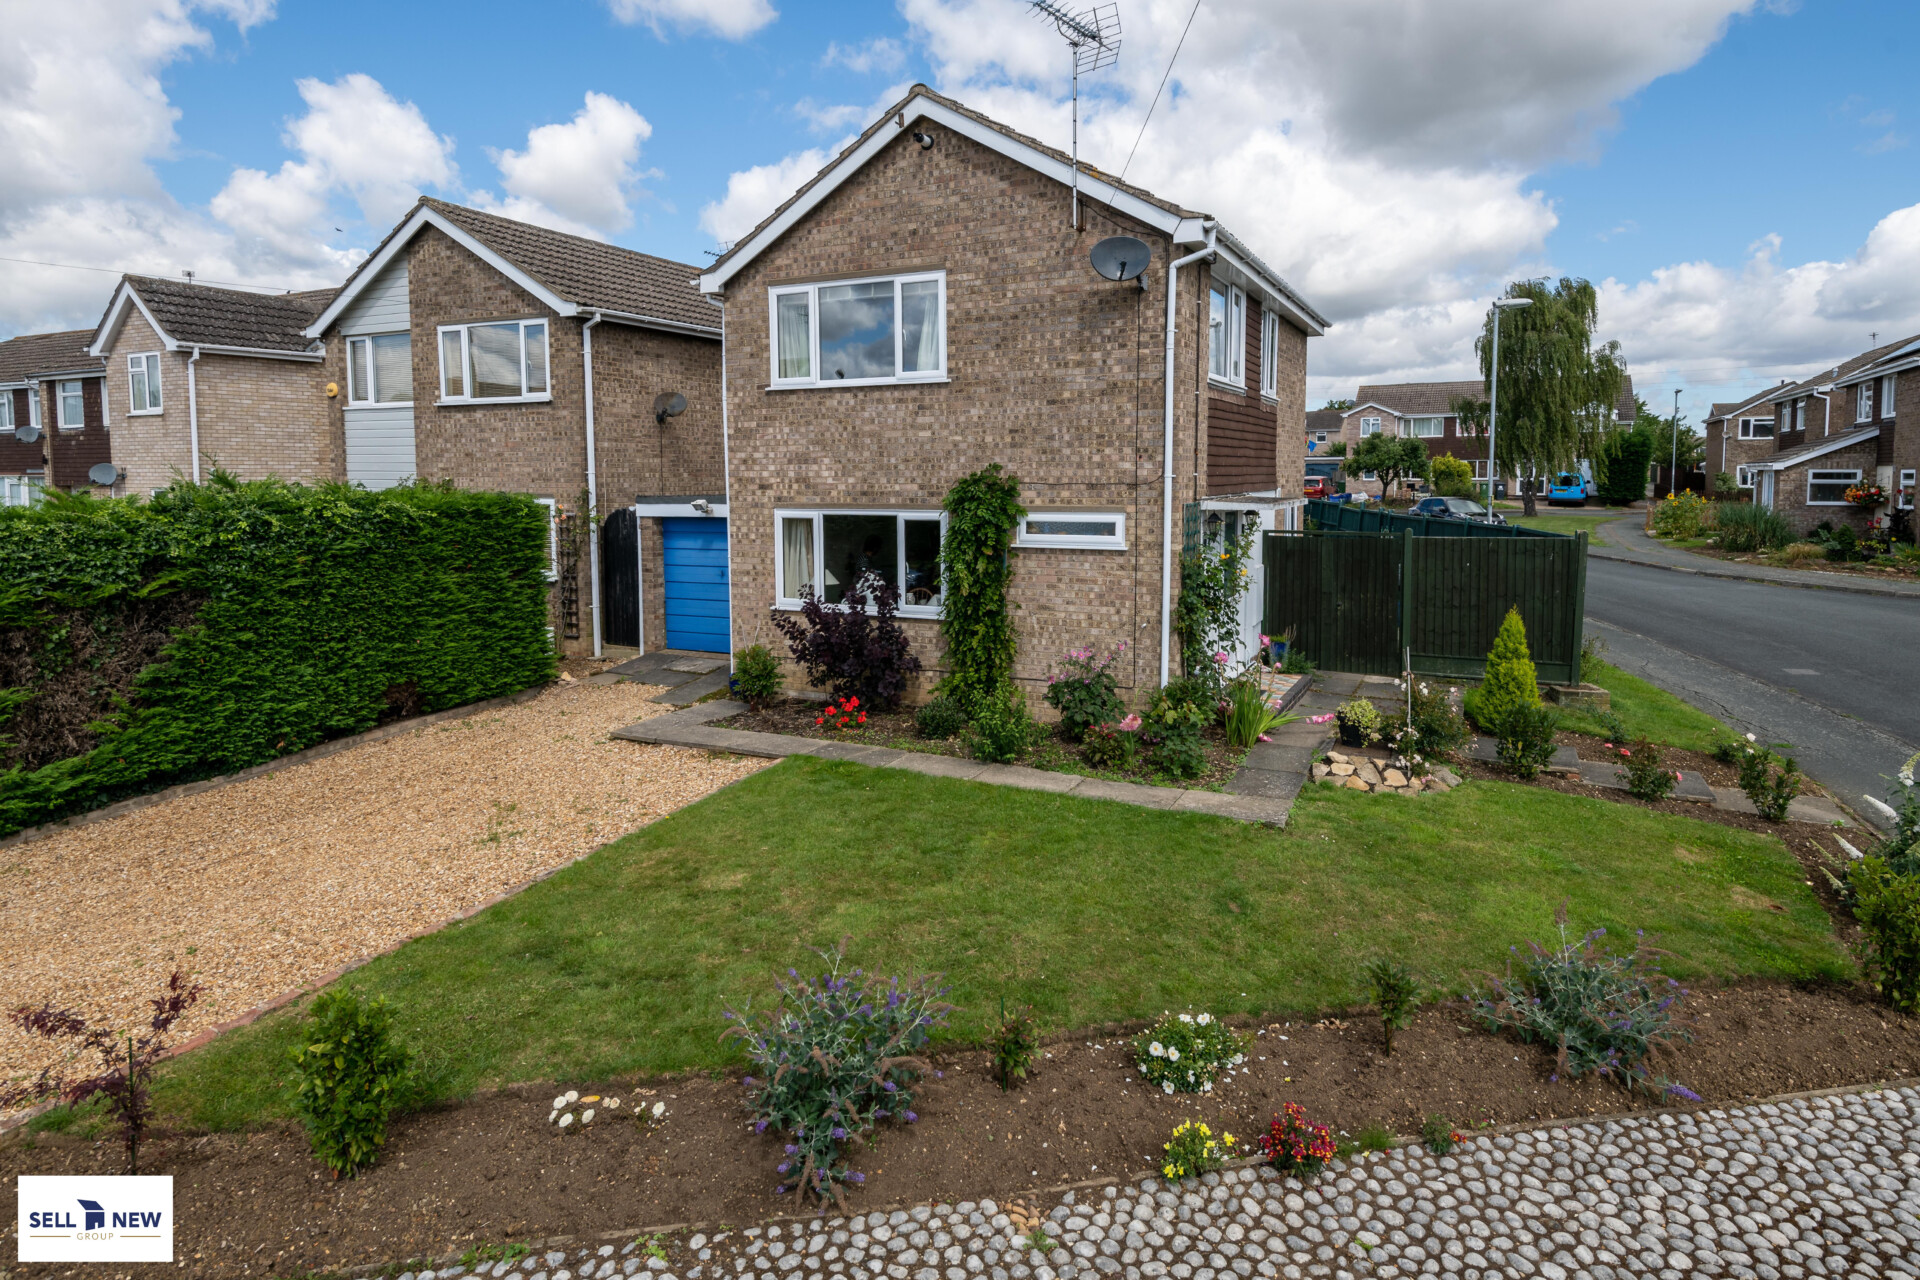 2 Coopers Thornhill, Stilton, PE7 3XD – THREE BEDROOM DETACHED FAMILY HOME LOCATED ON A CORNER PLOT POSITION